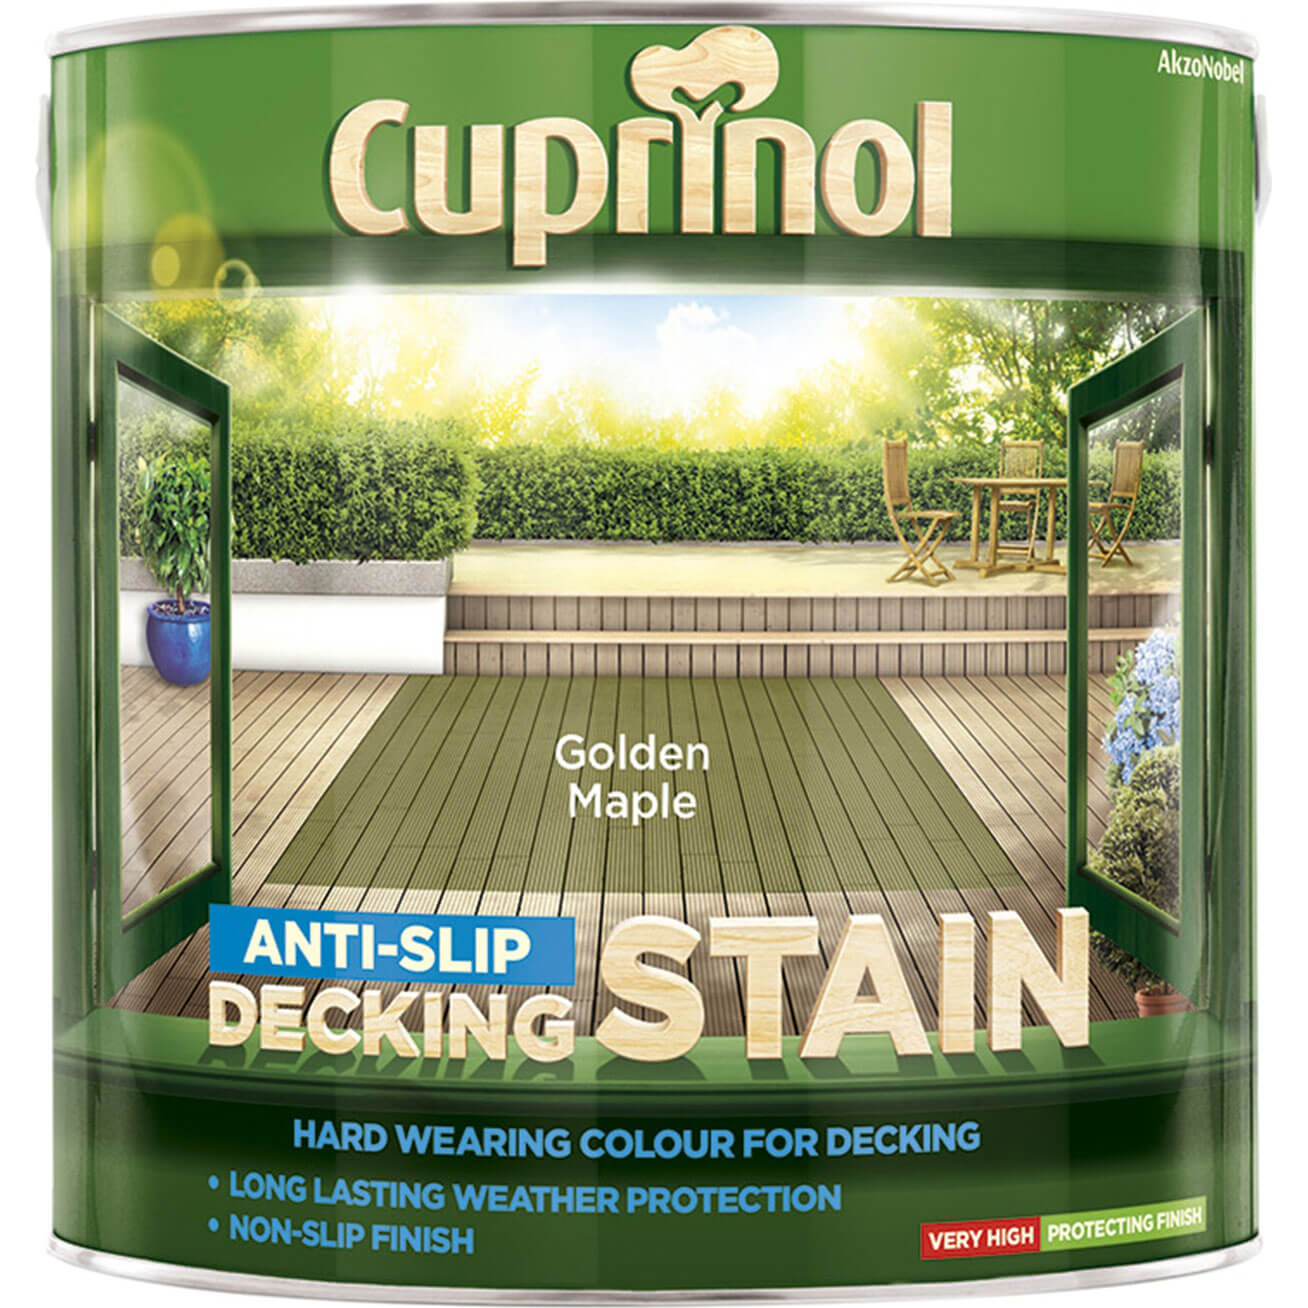 Cuprinol Anti-slip Decking Stain Golden Maple 2.5L